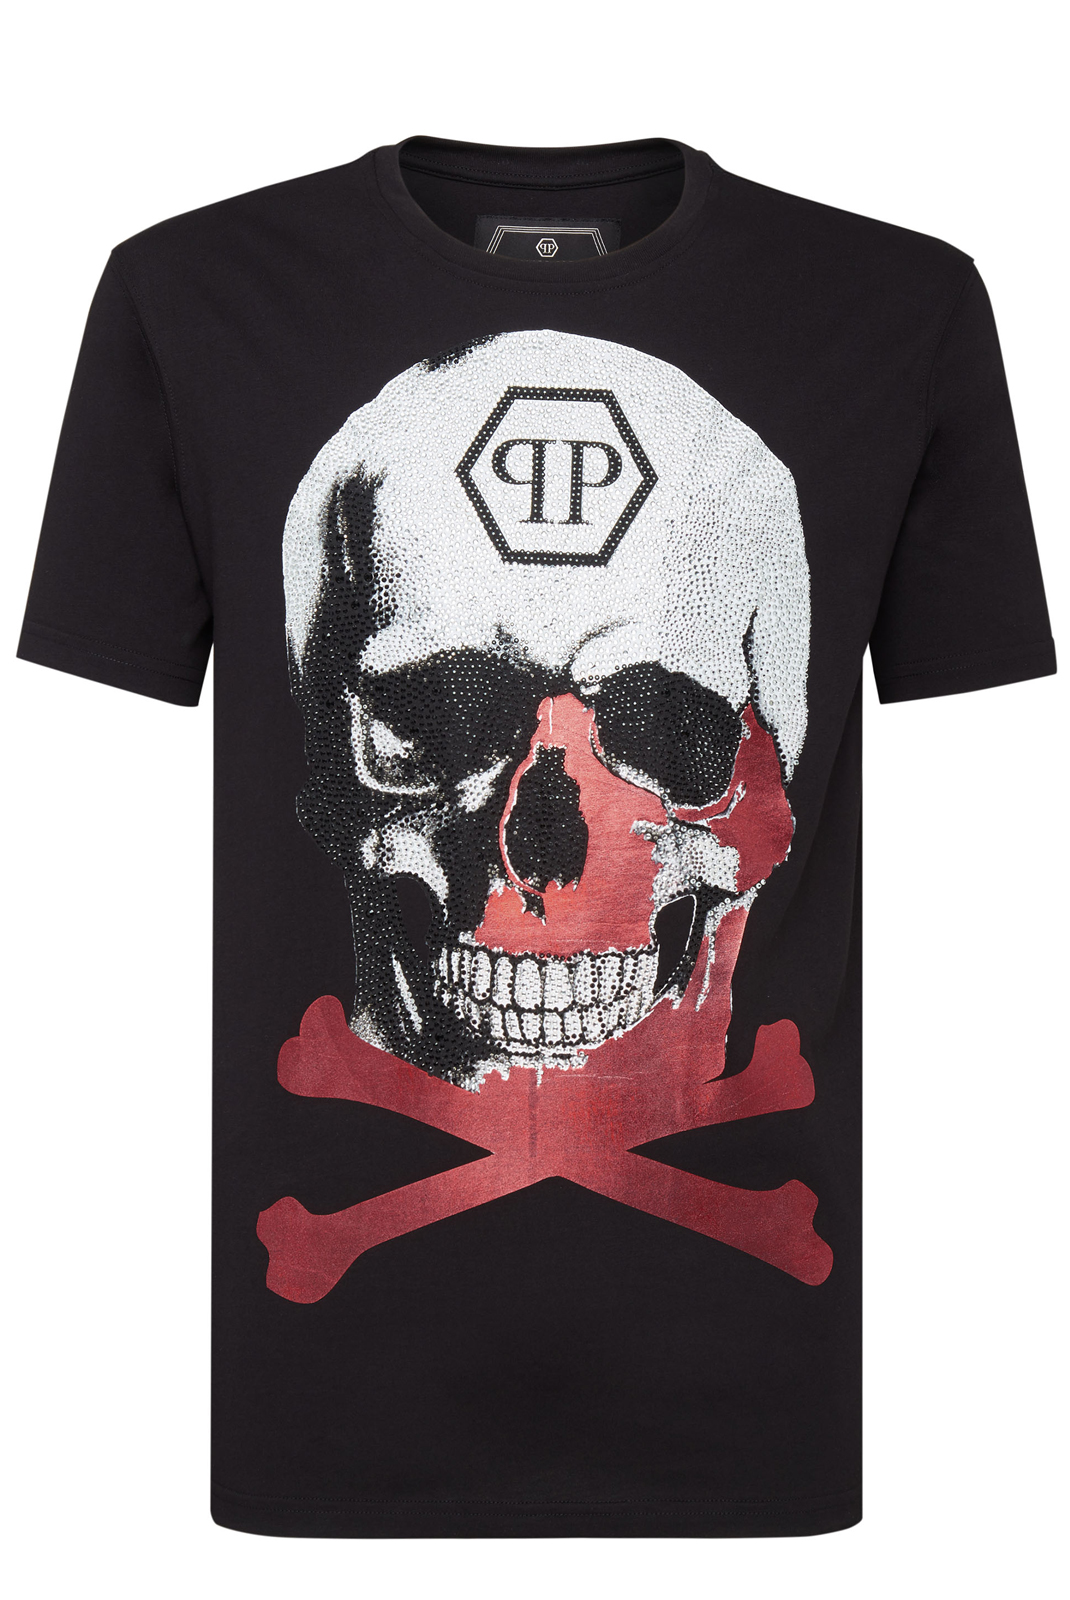 Tee-shirts  Philipp plein MTK3340 PLATINUM CUT ROUND NECK SKULL BLACK